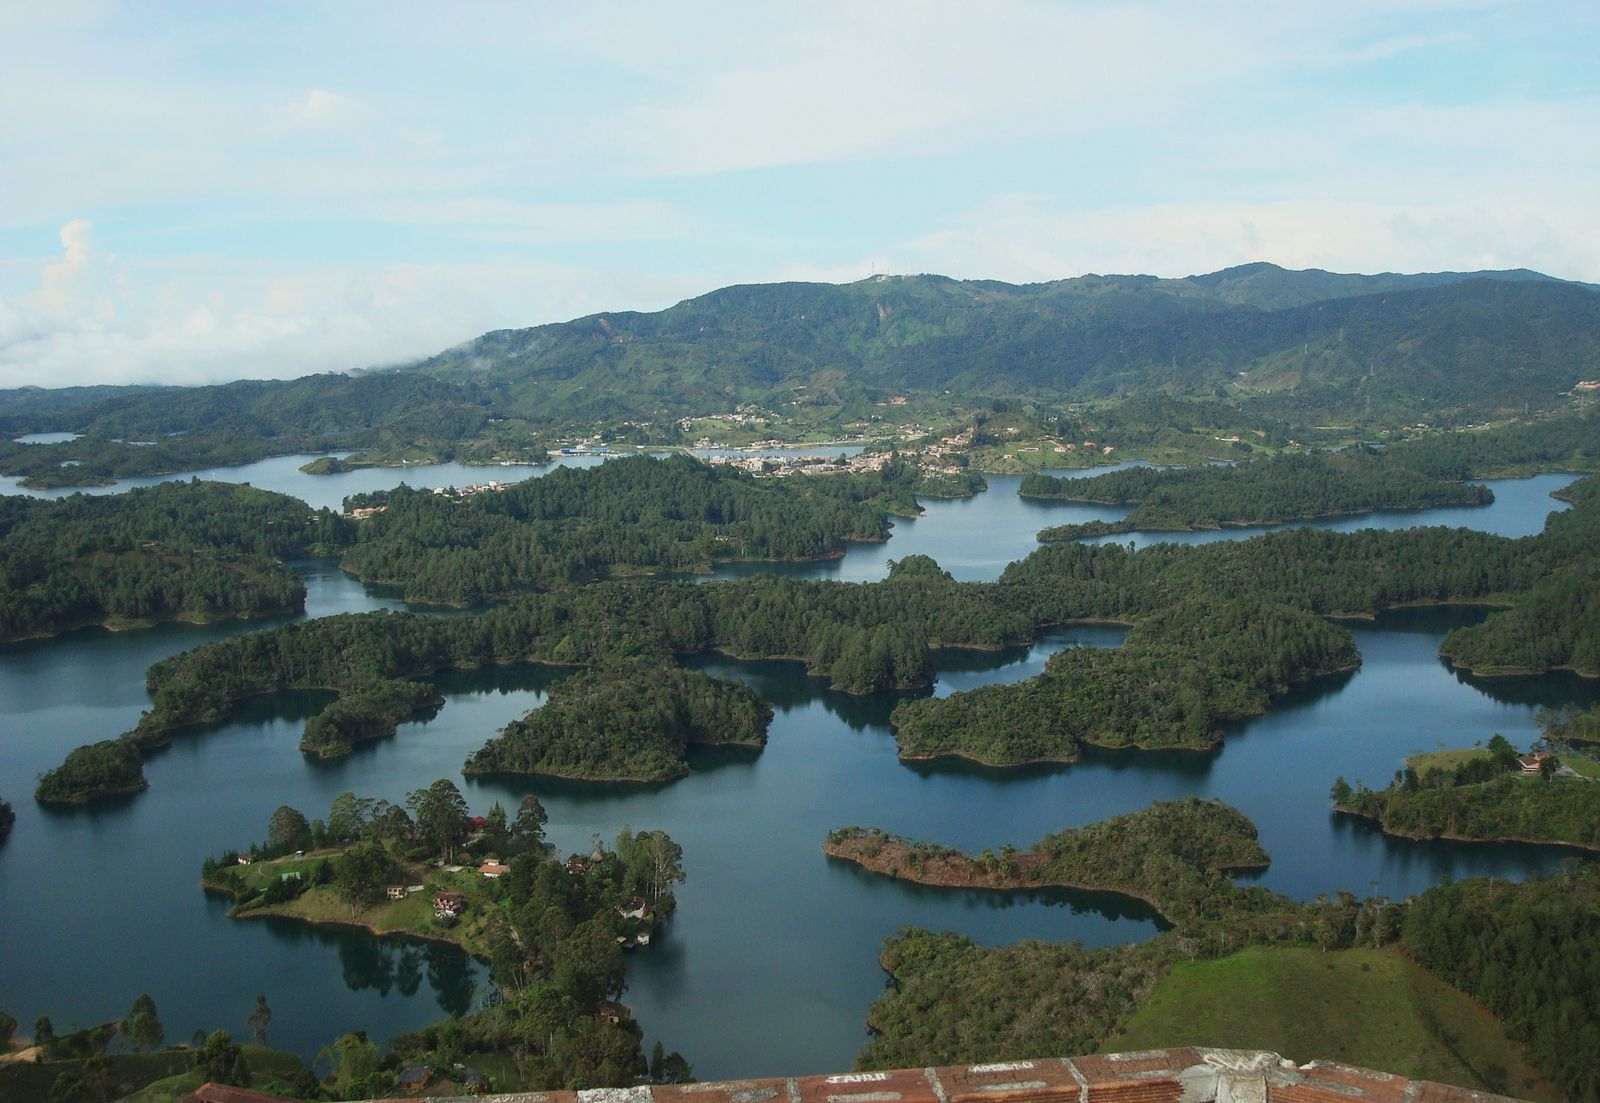 View from the top of La Piedra